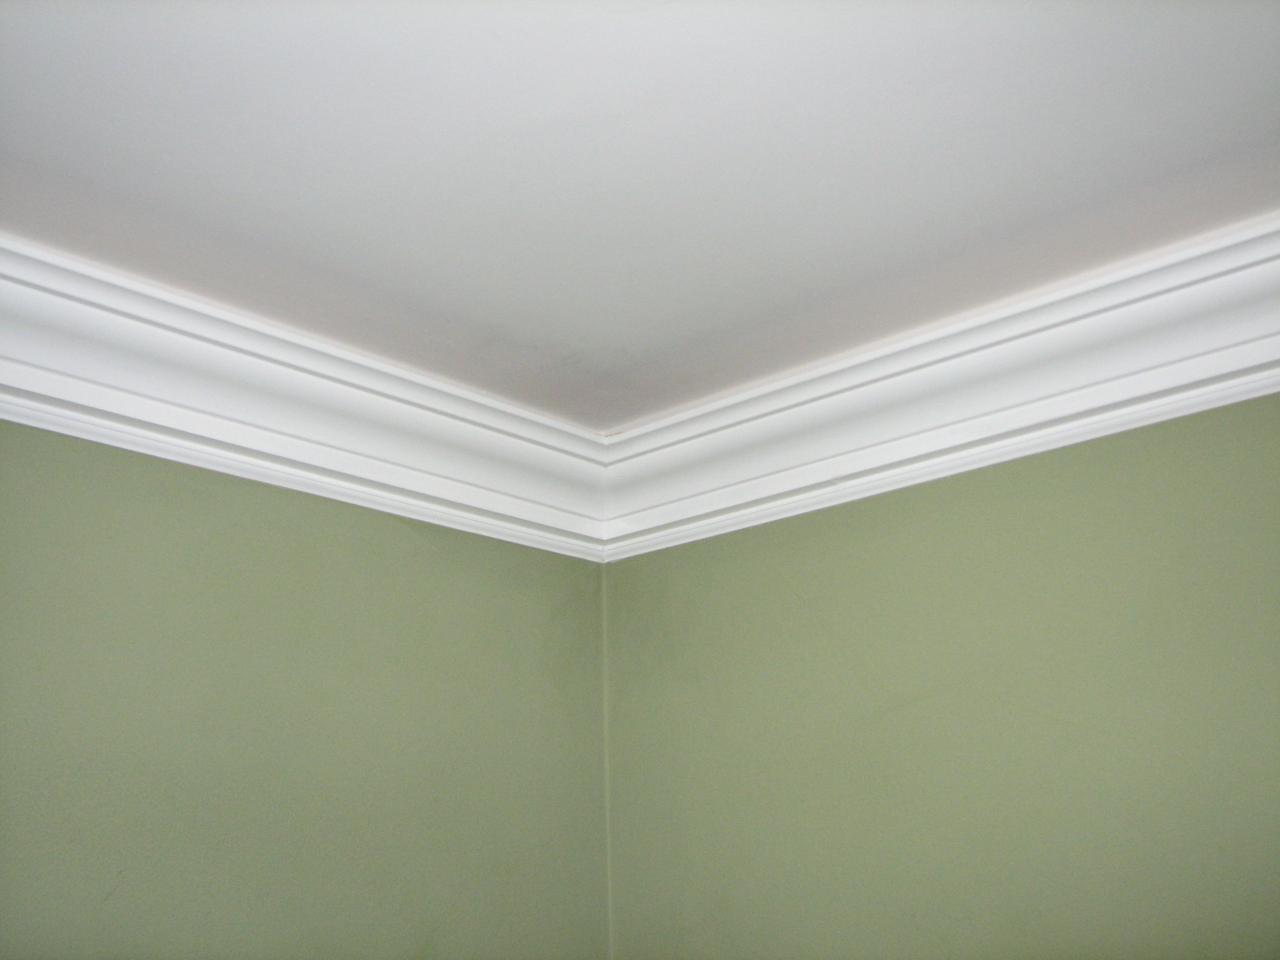 Crown Molding 1280x960